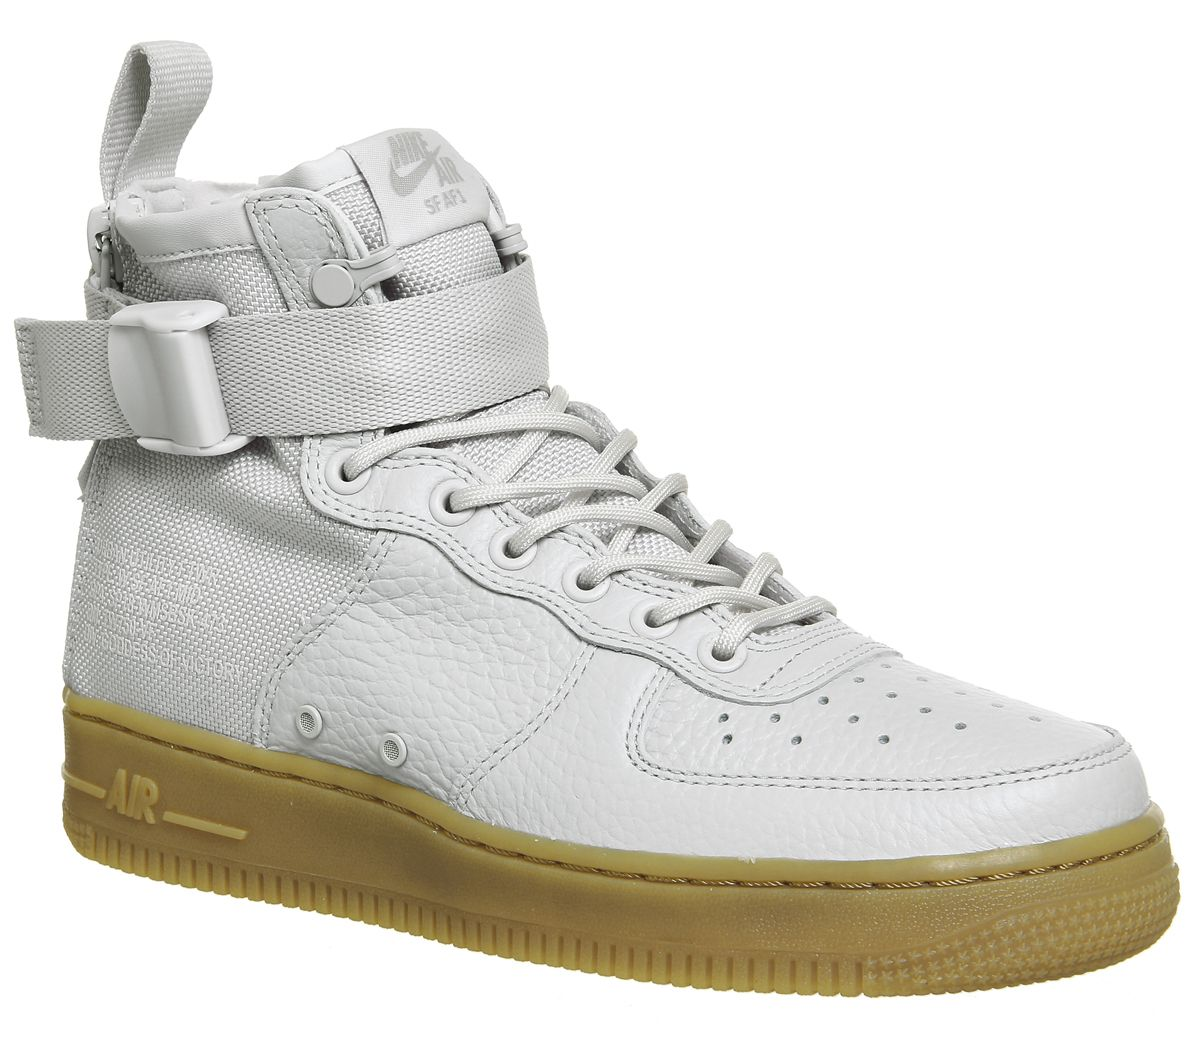 check out a78eb c9e62 Sf Af1 Mid 17